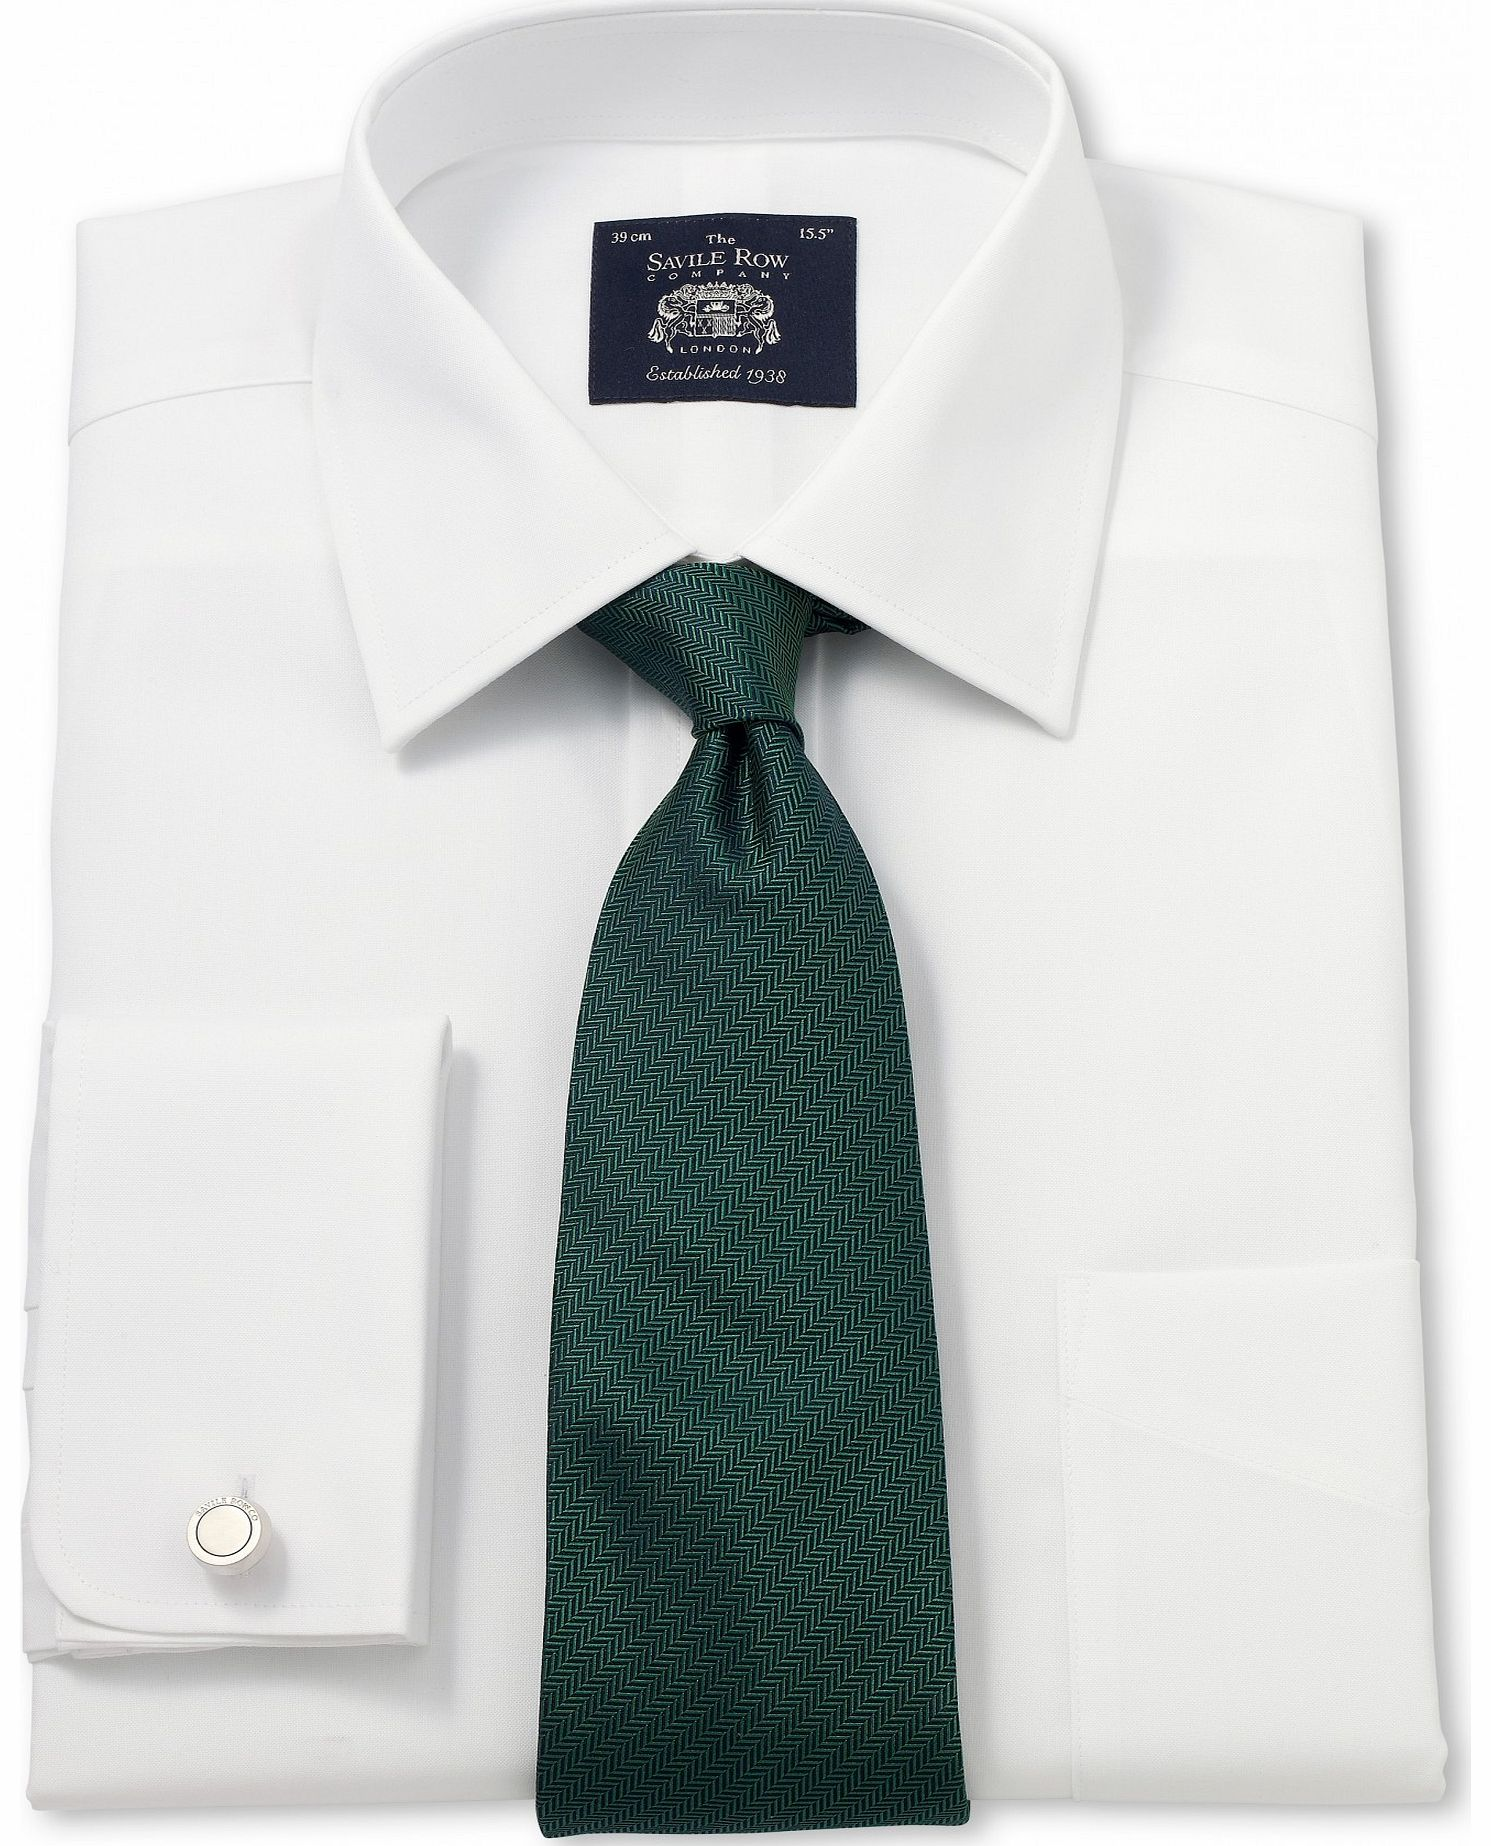 Savile Row Company White Non-Iron Classic Fit Shirt 18`` Double product image